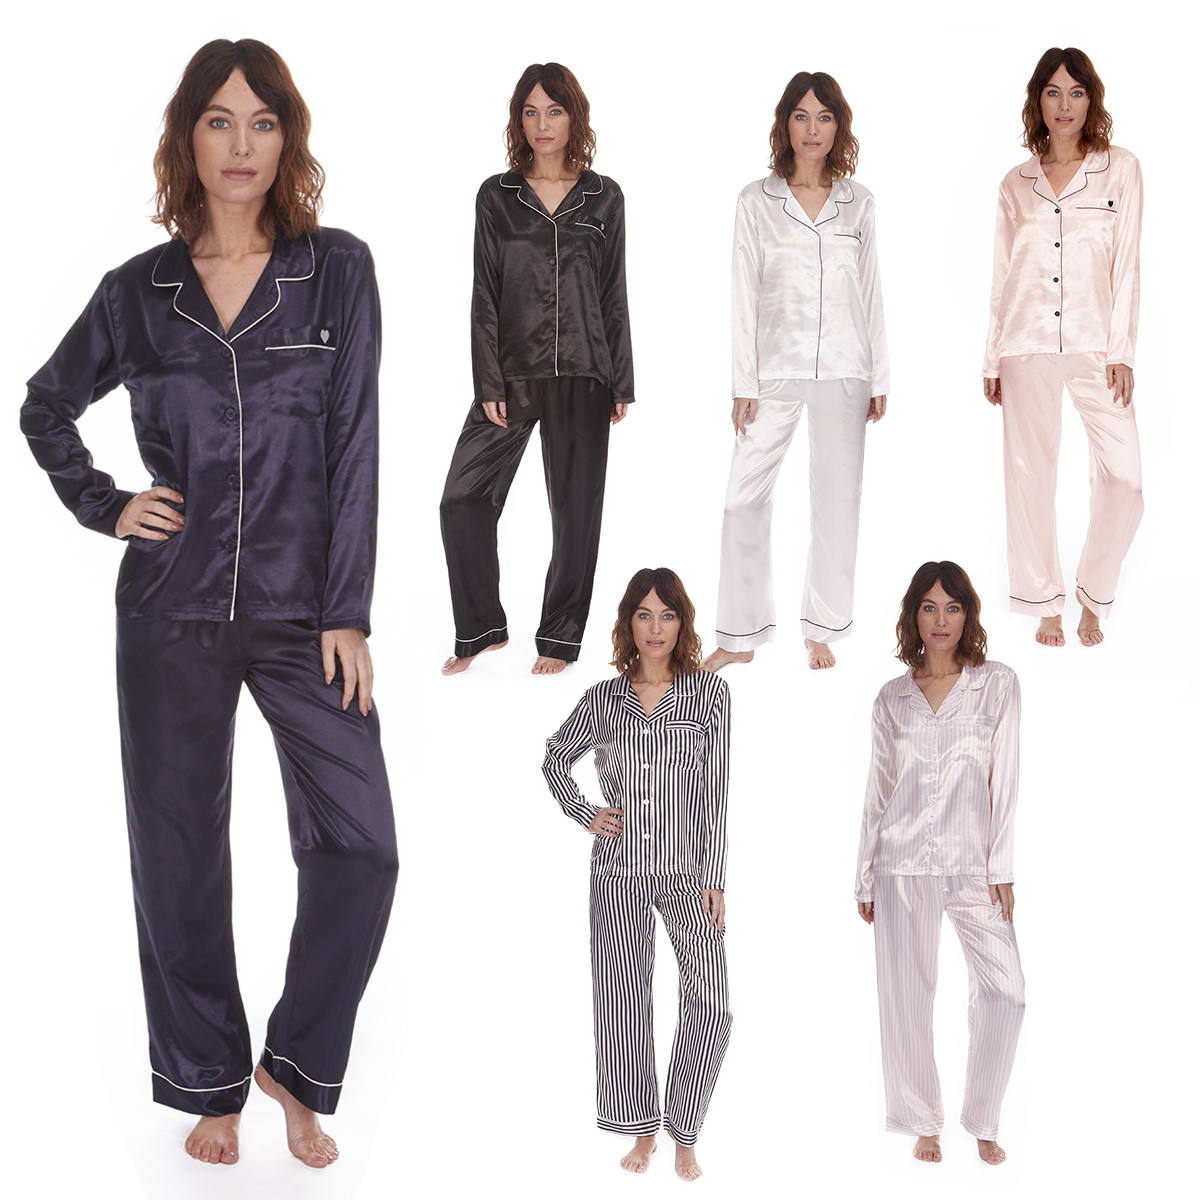 Ladies Womens Satin Pajama Set Lounge Sleep Plain Long Sleeve FOREVER  DREAMING a4733ddcca